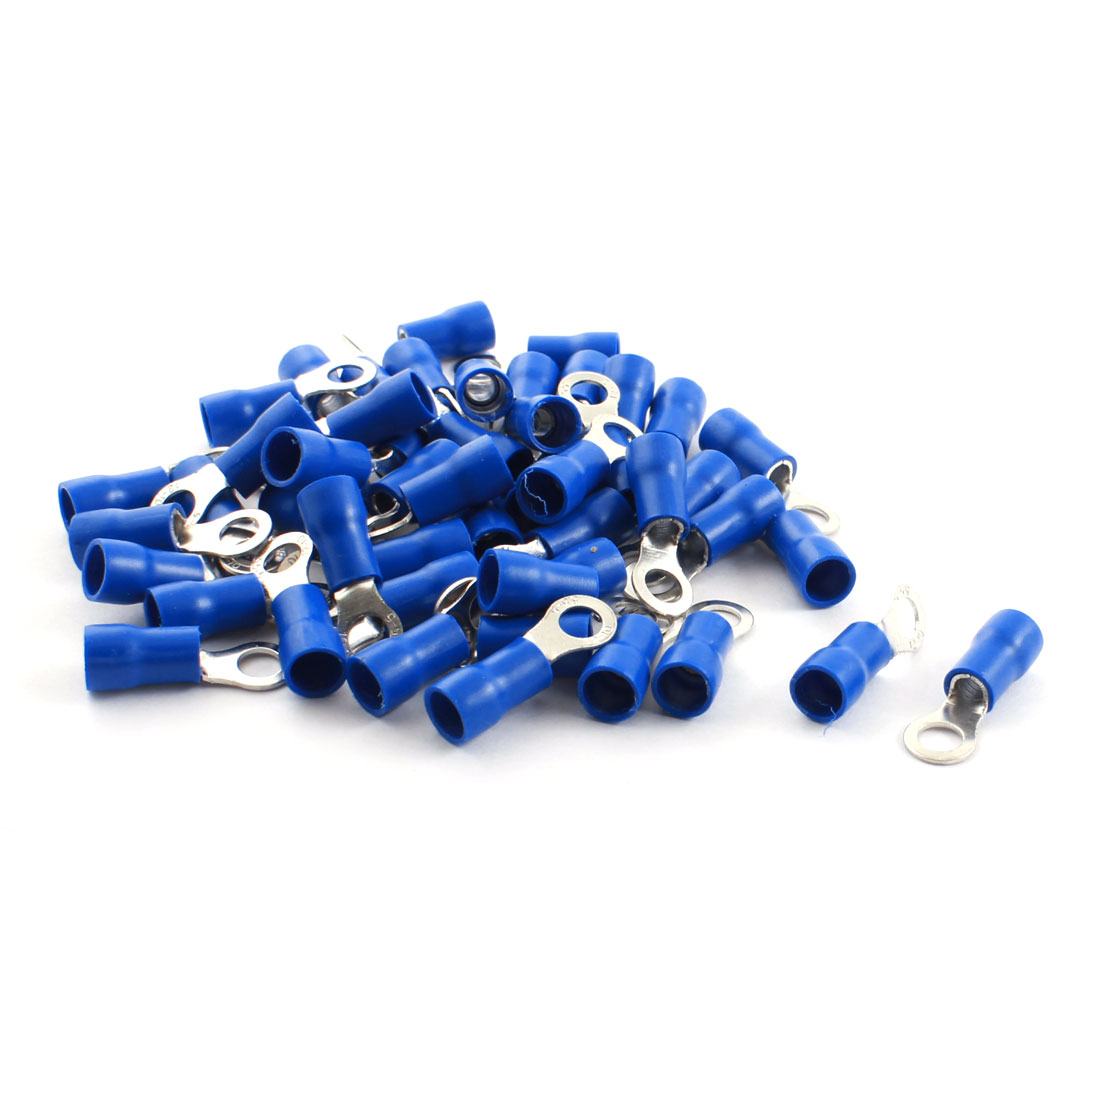 50Pcs RV5.5-5 48A 6.4mm Dia Blue Pre Insulated Ring Crimp Terminal Cable Connector 12-10AWG